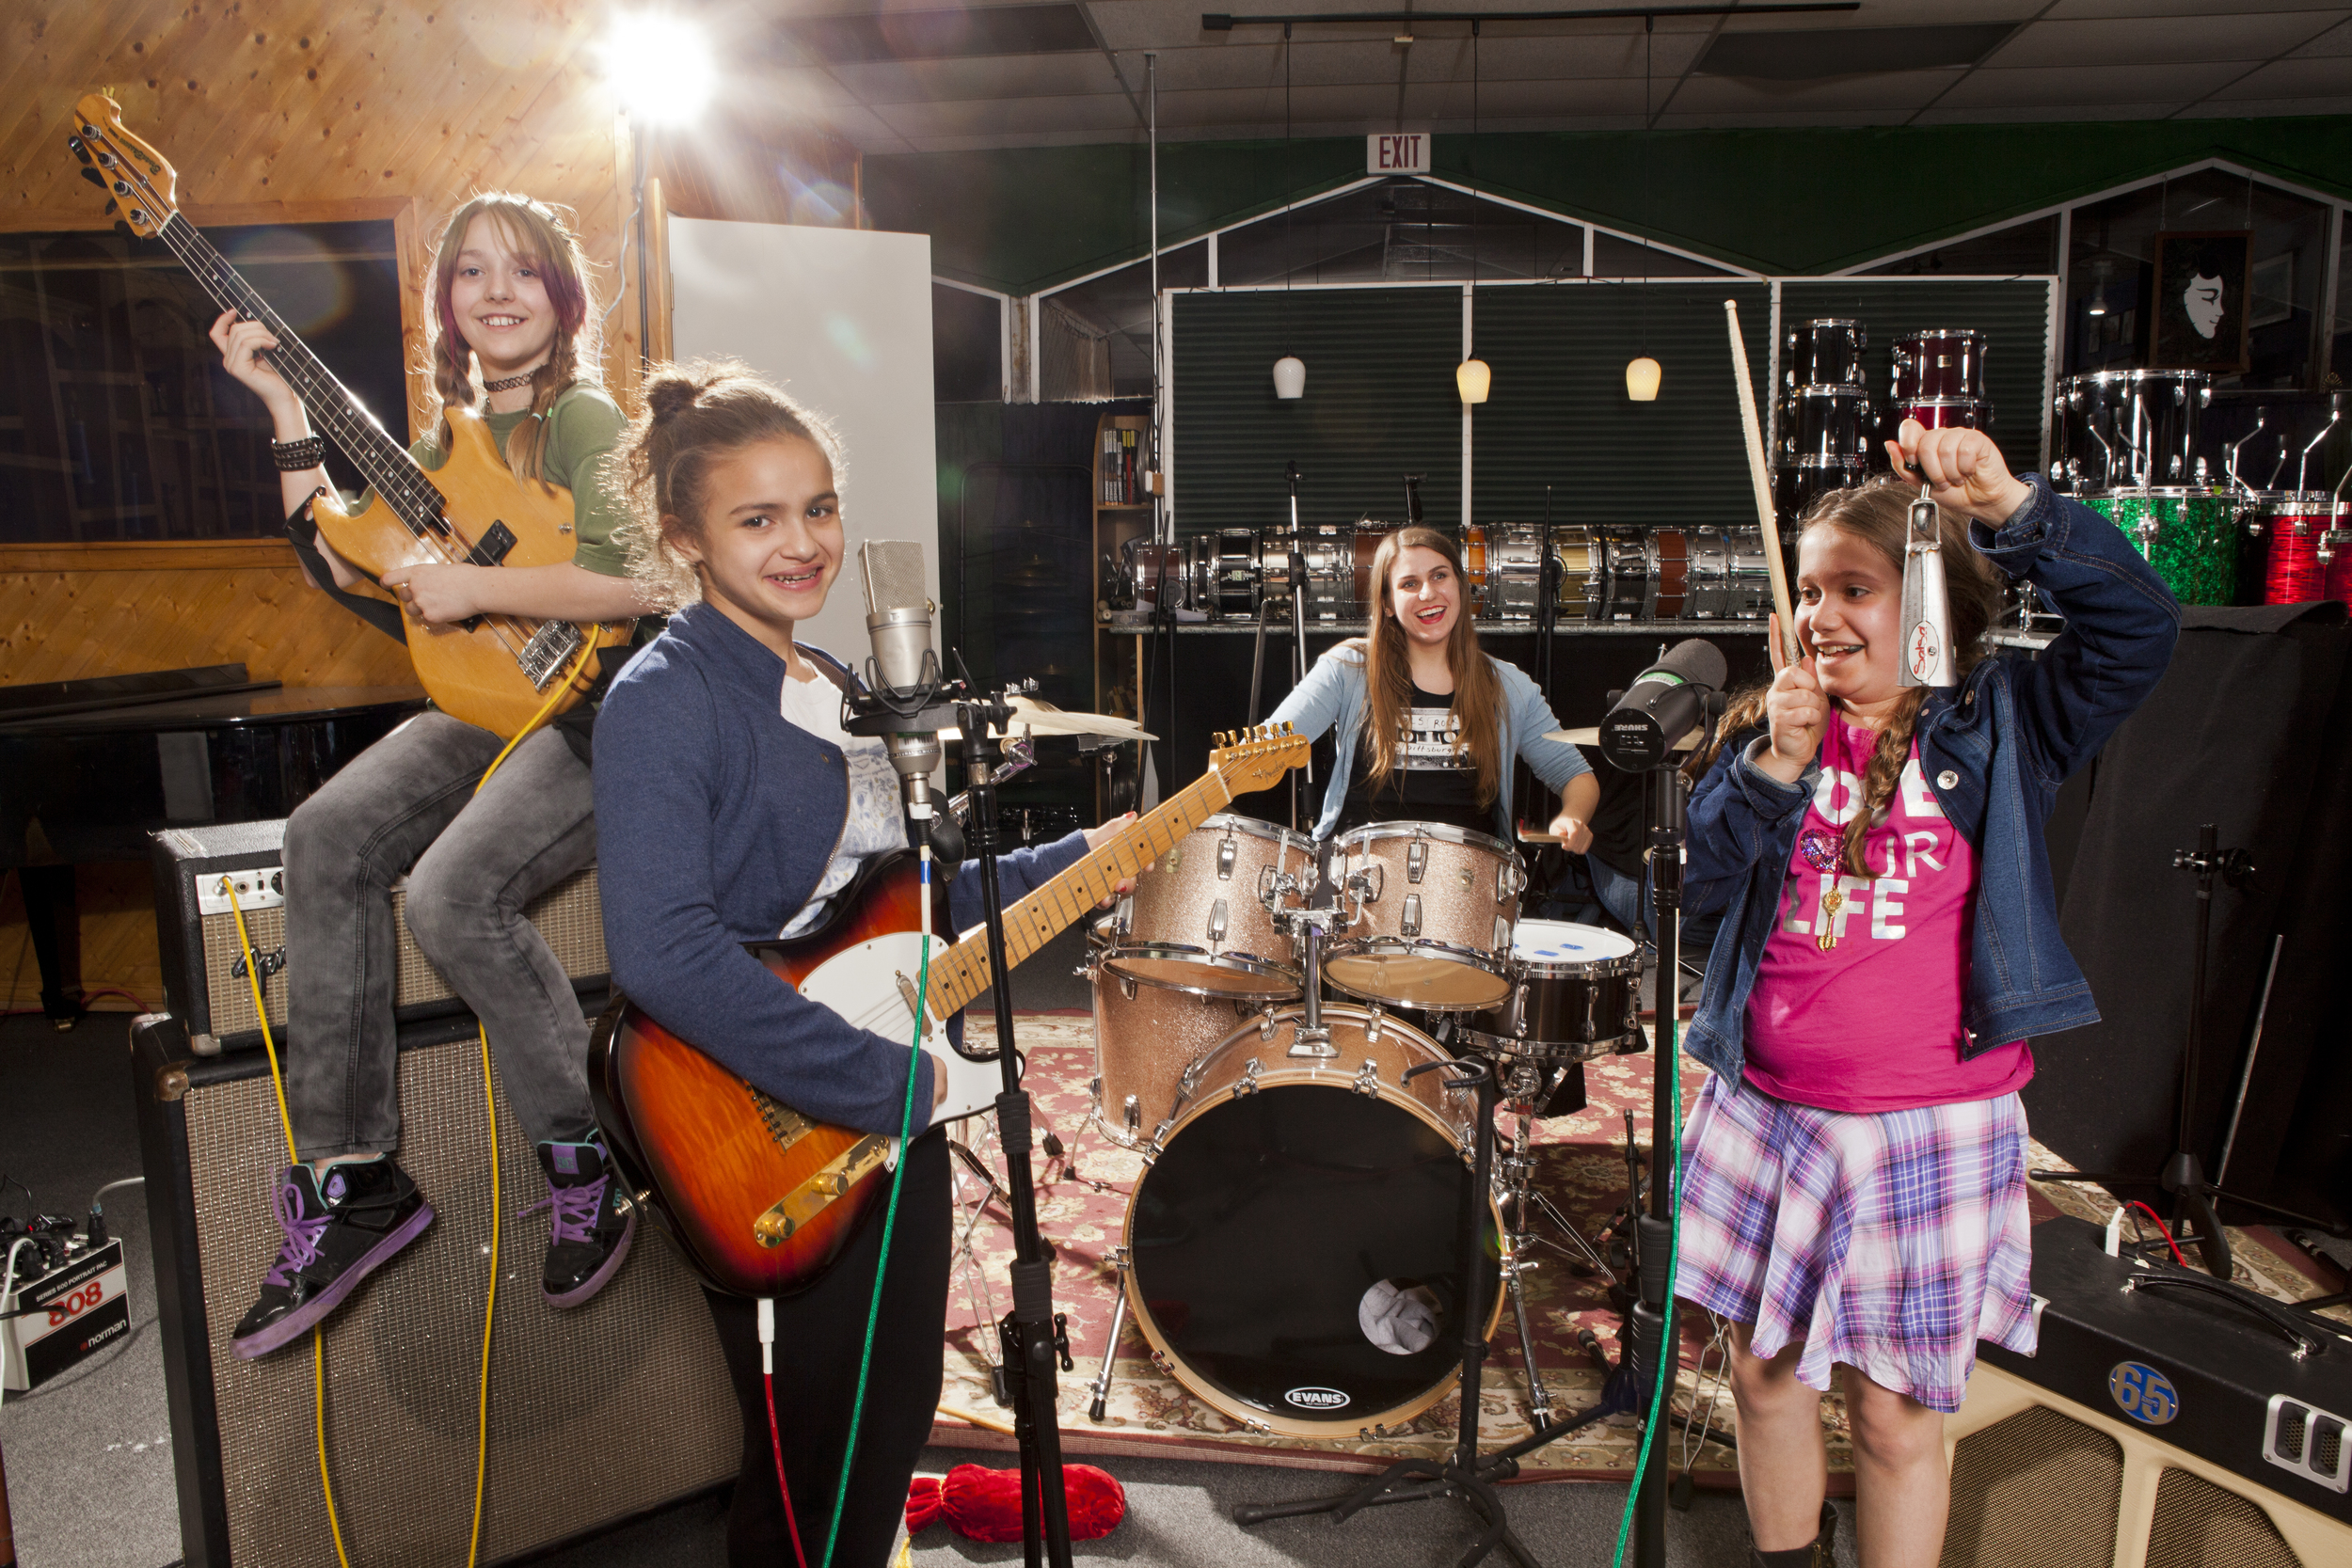 For more information on Girls Rock! Pittsburgh and some music, go to:  https://girlsrockpittsburgh.bandcamp.com